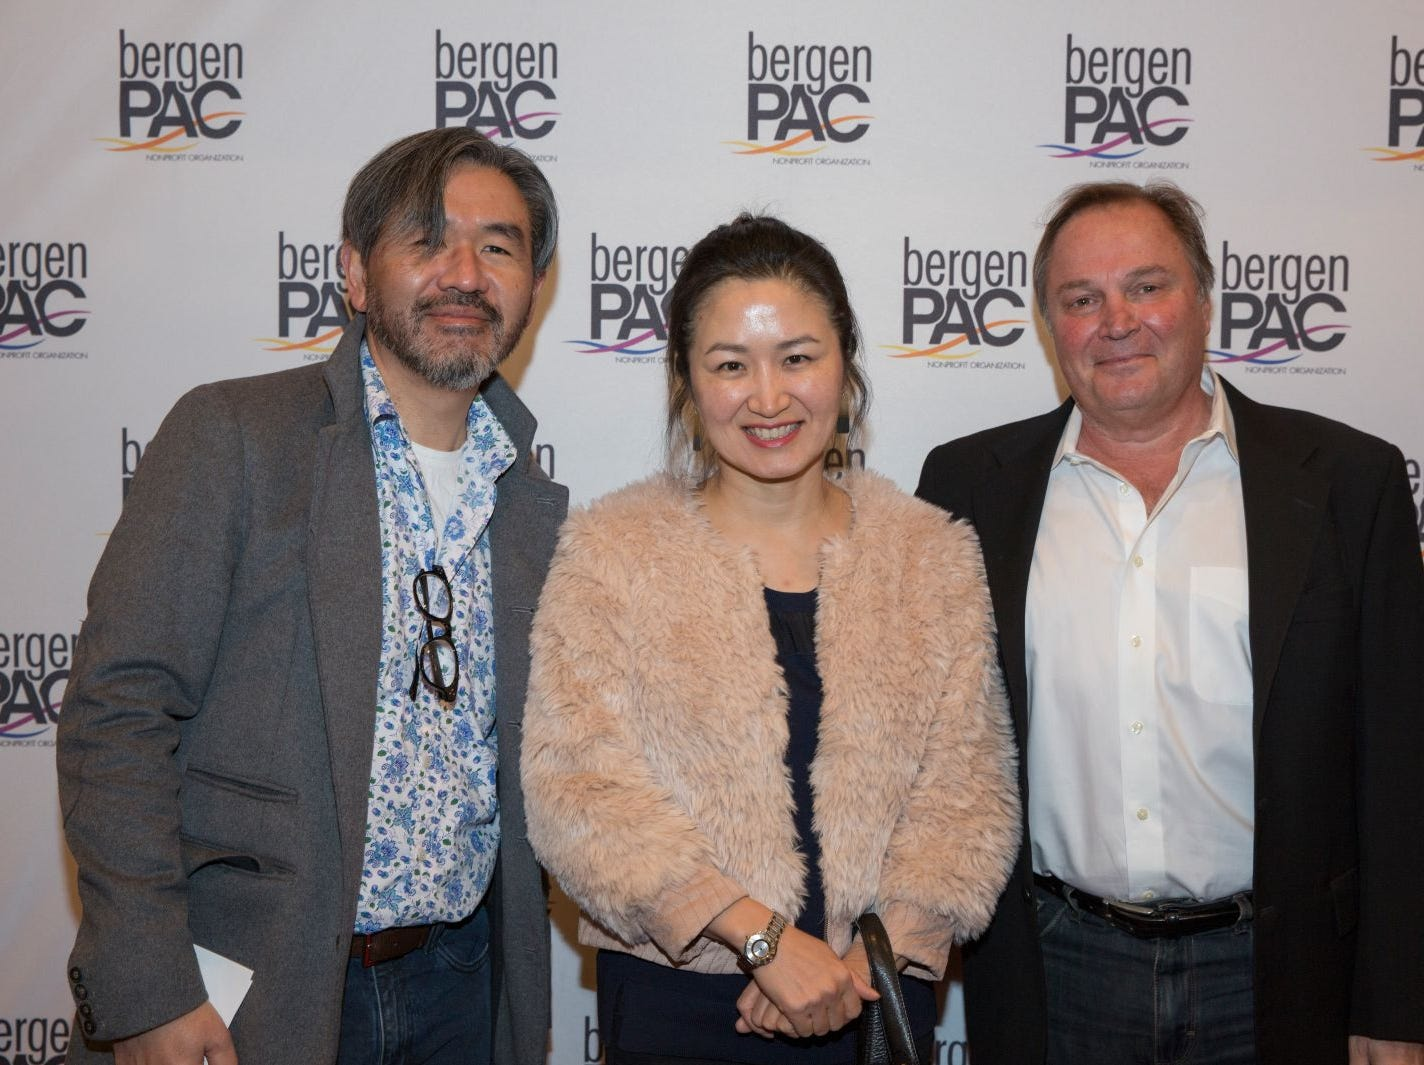 Jake Chung, Julie Chang, Dominic Roncace. BergenPAC held its annual fall gala featuring John Fogerty in Englewood. This year's honoree was Fernando Garip, from Wilmington Trust and M&T Bank. 11/08/2018